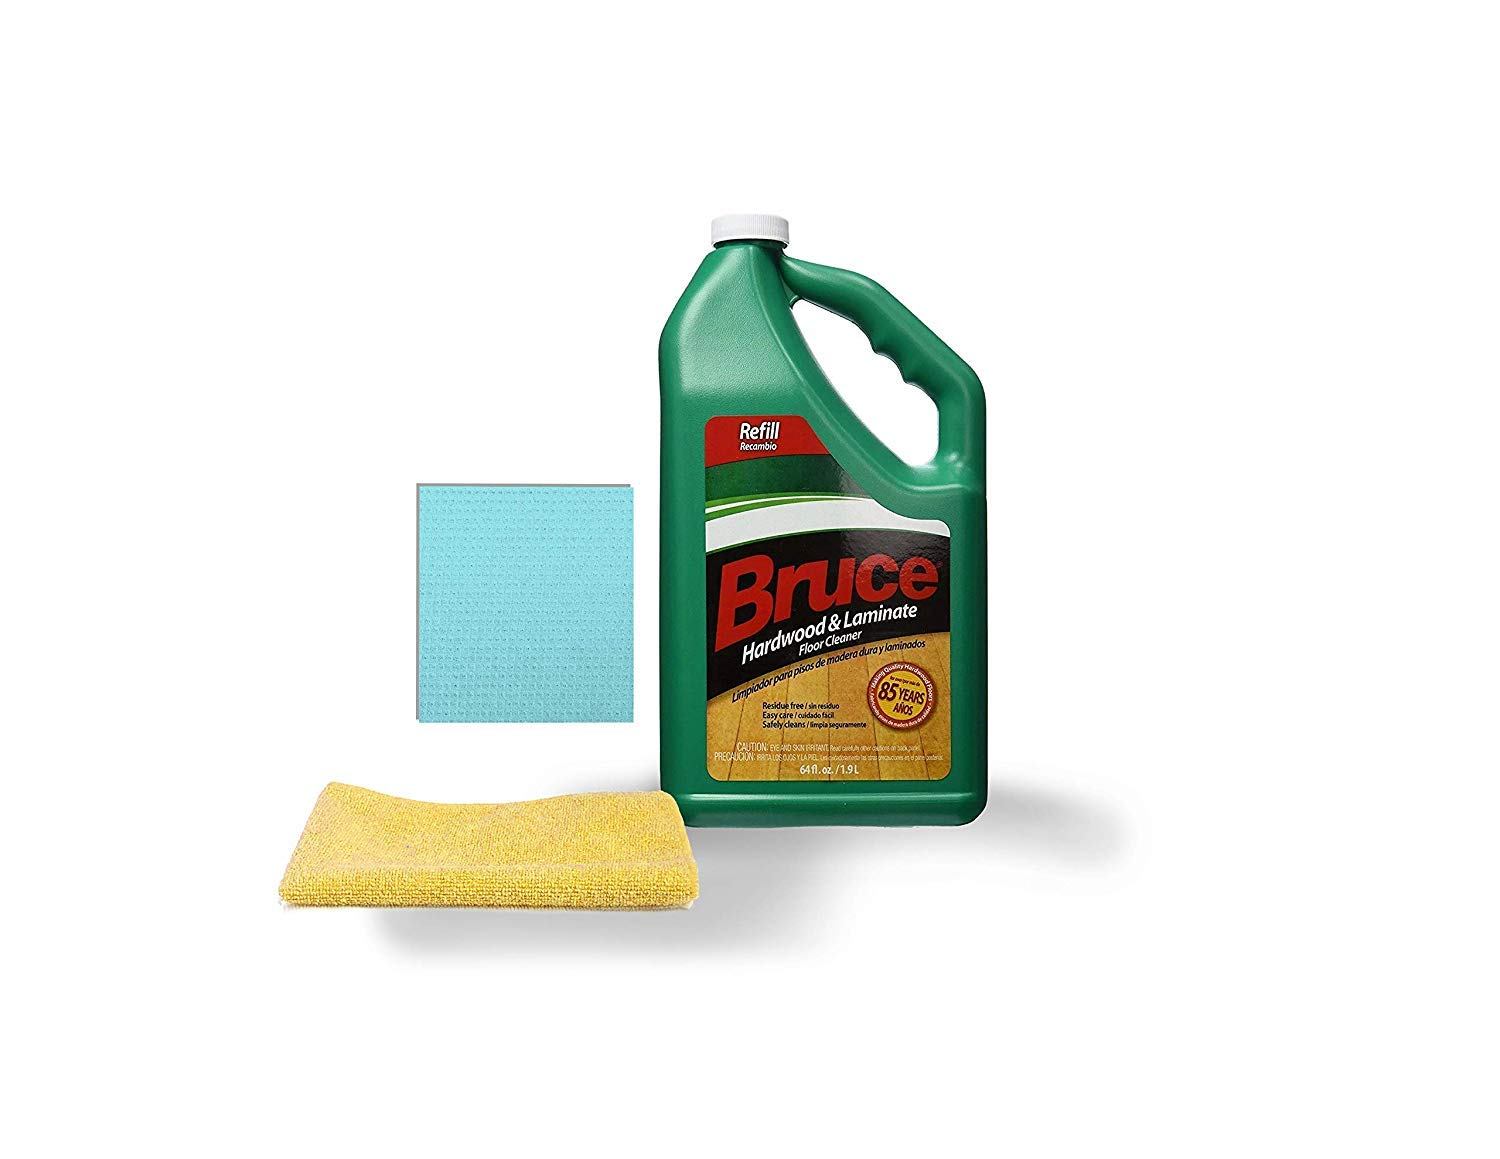 Bruce Armstrong 64 fl. oz. Best Hardwood Laminate Floor Surface Wood Floors Liquid Cleaner Refill Bottle Microfiber & Sponge Cleaning Cloth Floorcare.